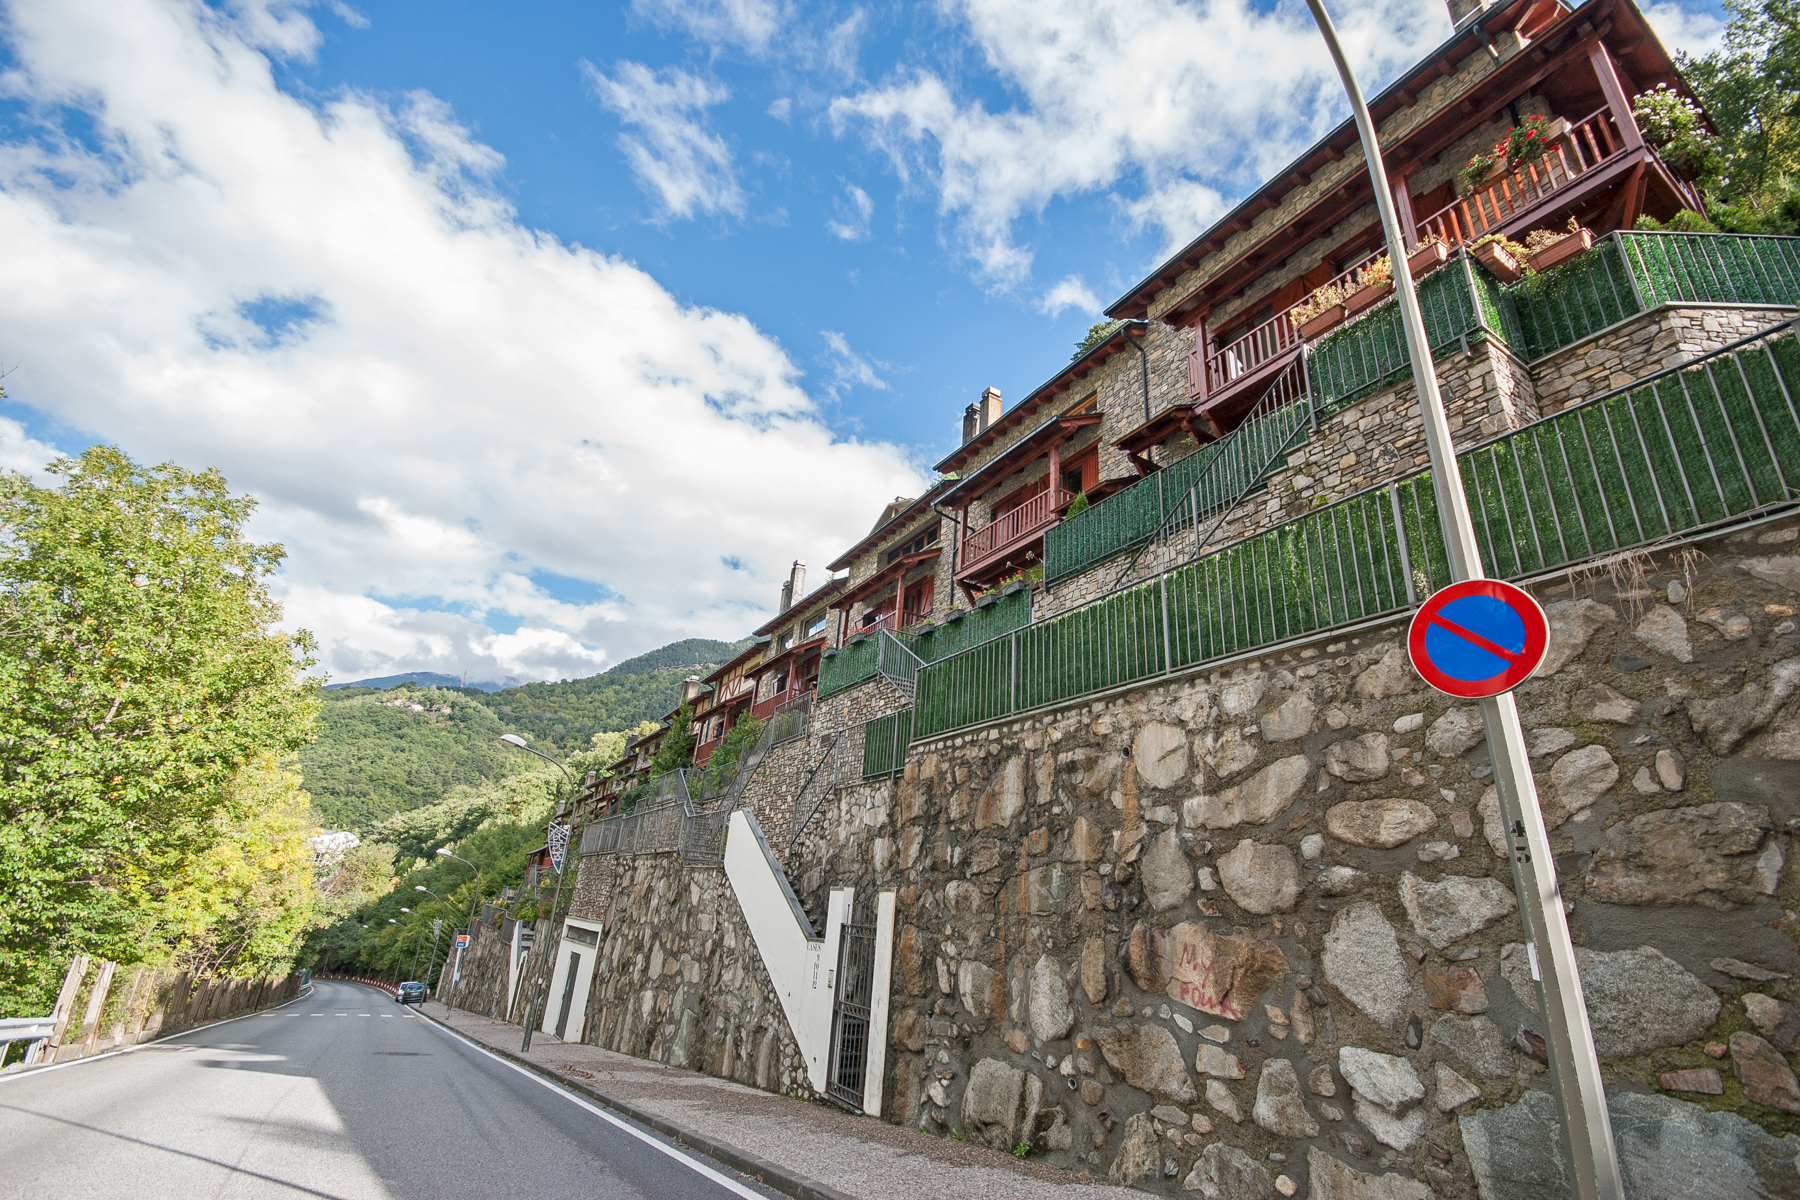 獨棟家庭住宅 為 出售 在 Attached for sale in Andorra la Vella Andorra La Vella, Andorra La Vella, AD500 Andorra